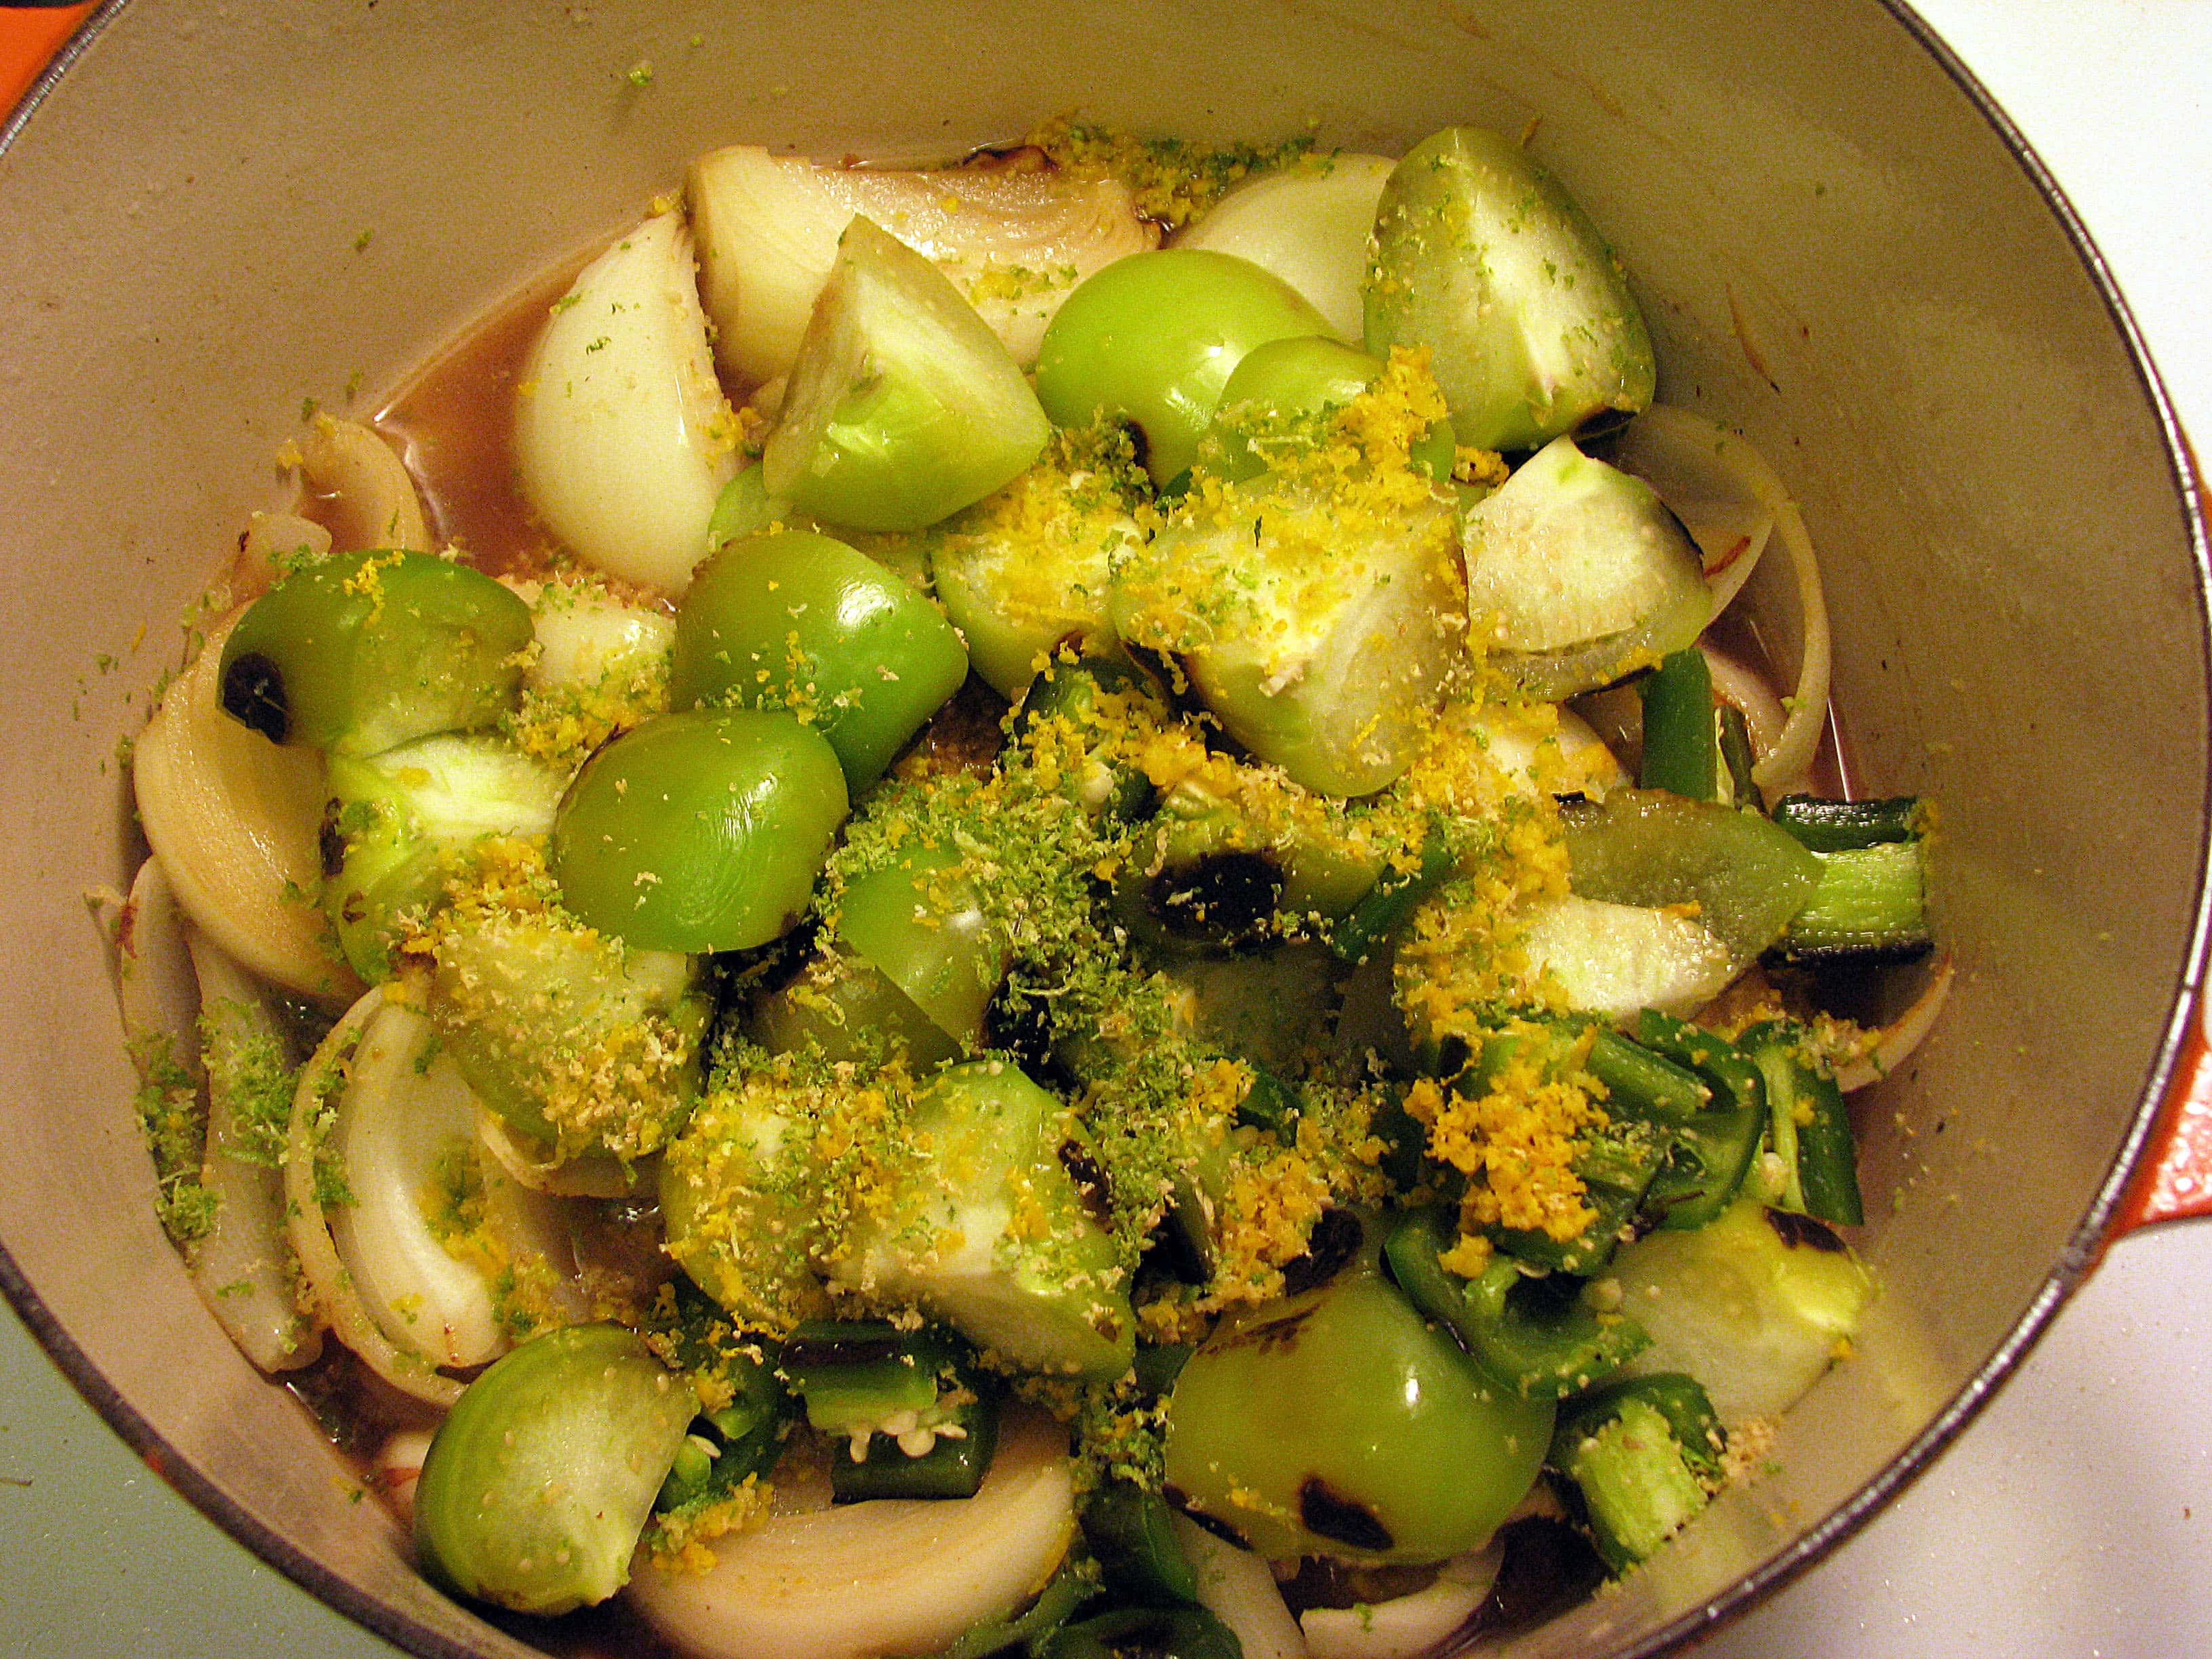 Add charred veggies and zest to pot